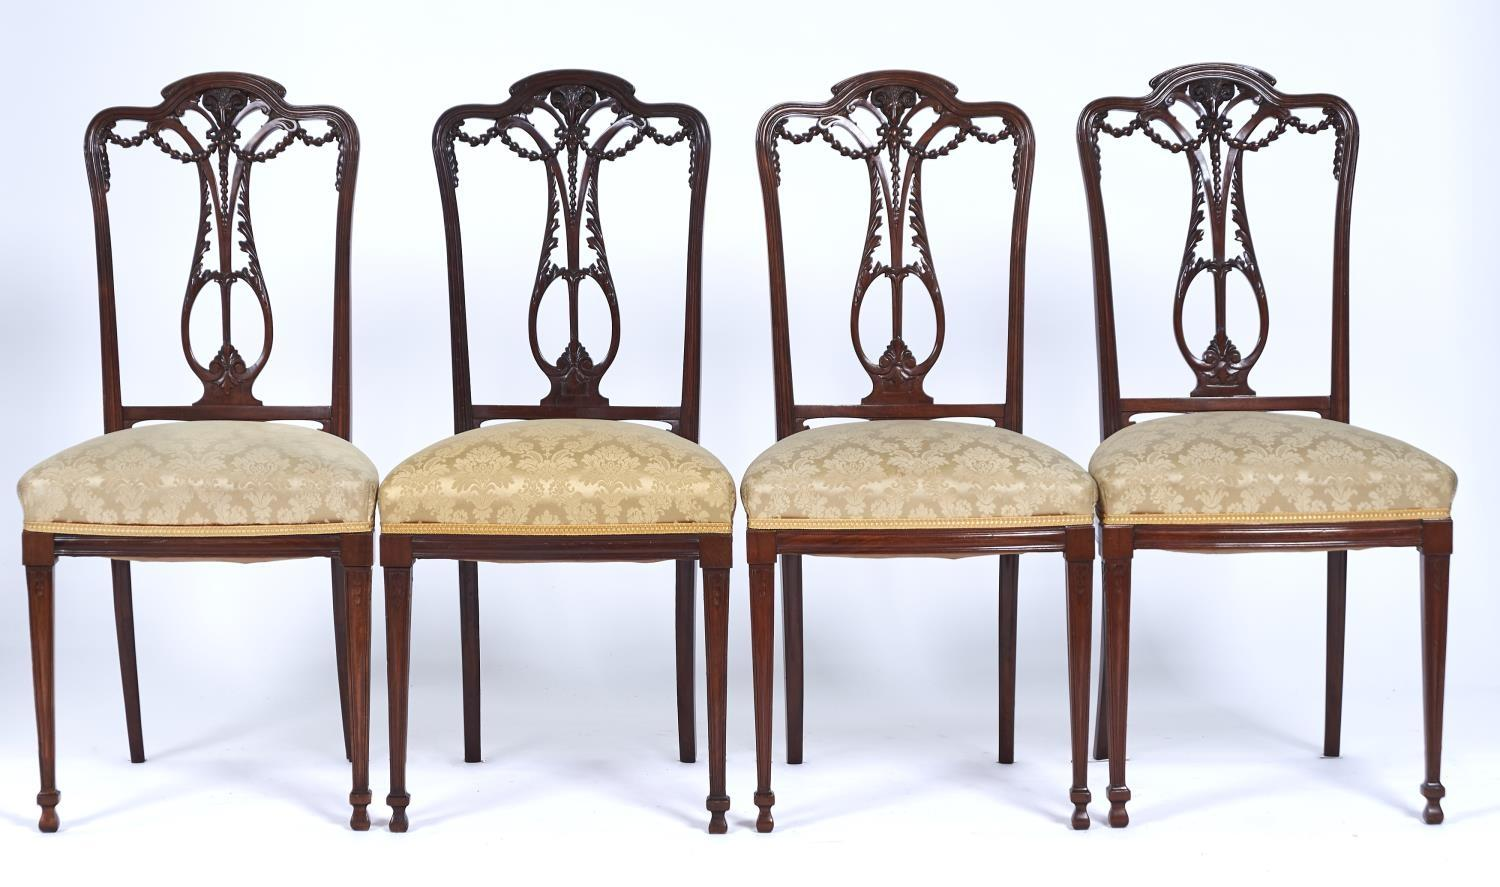 A MAHOGANY SALON SUITE, EARLY 20TH C, IN NEO CLASSICAL STYLE, THE PAIR OF BERGERES AND CANAPE WITH - Image 3 of 3